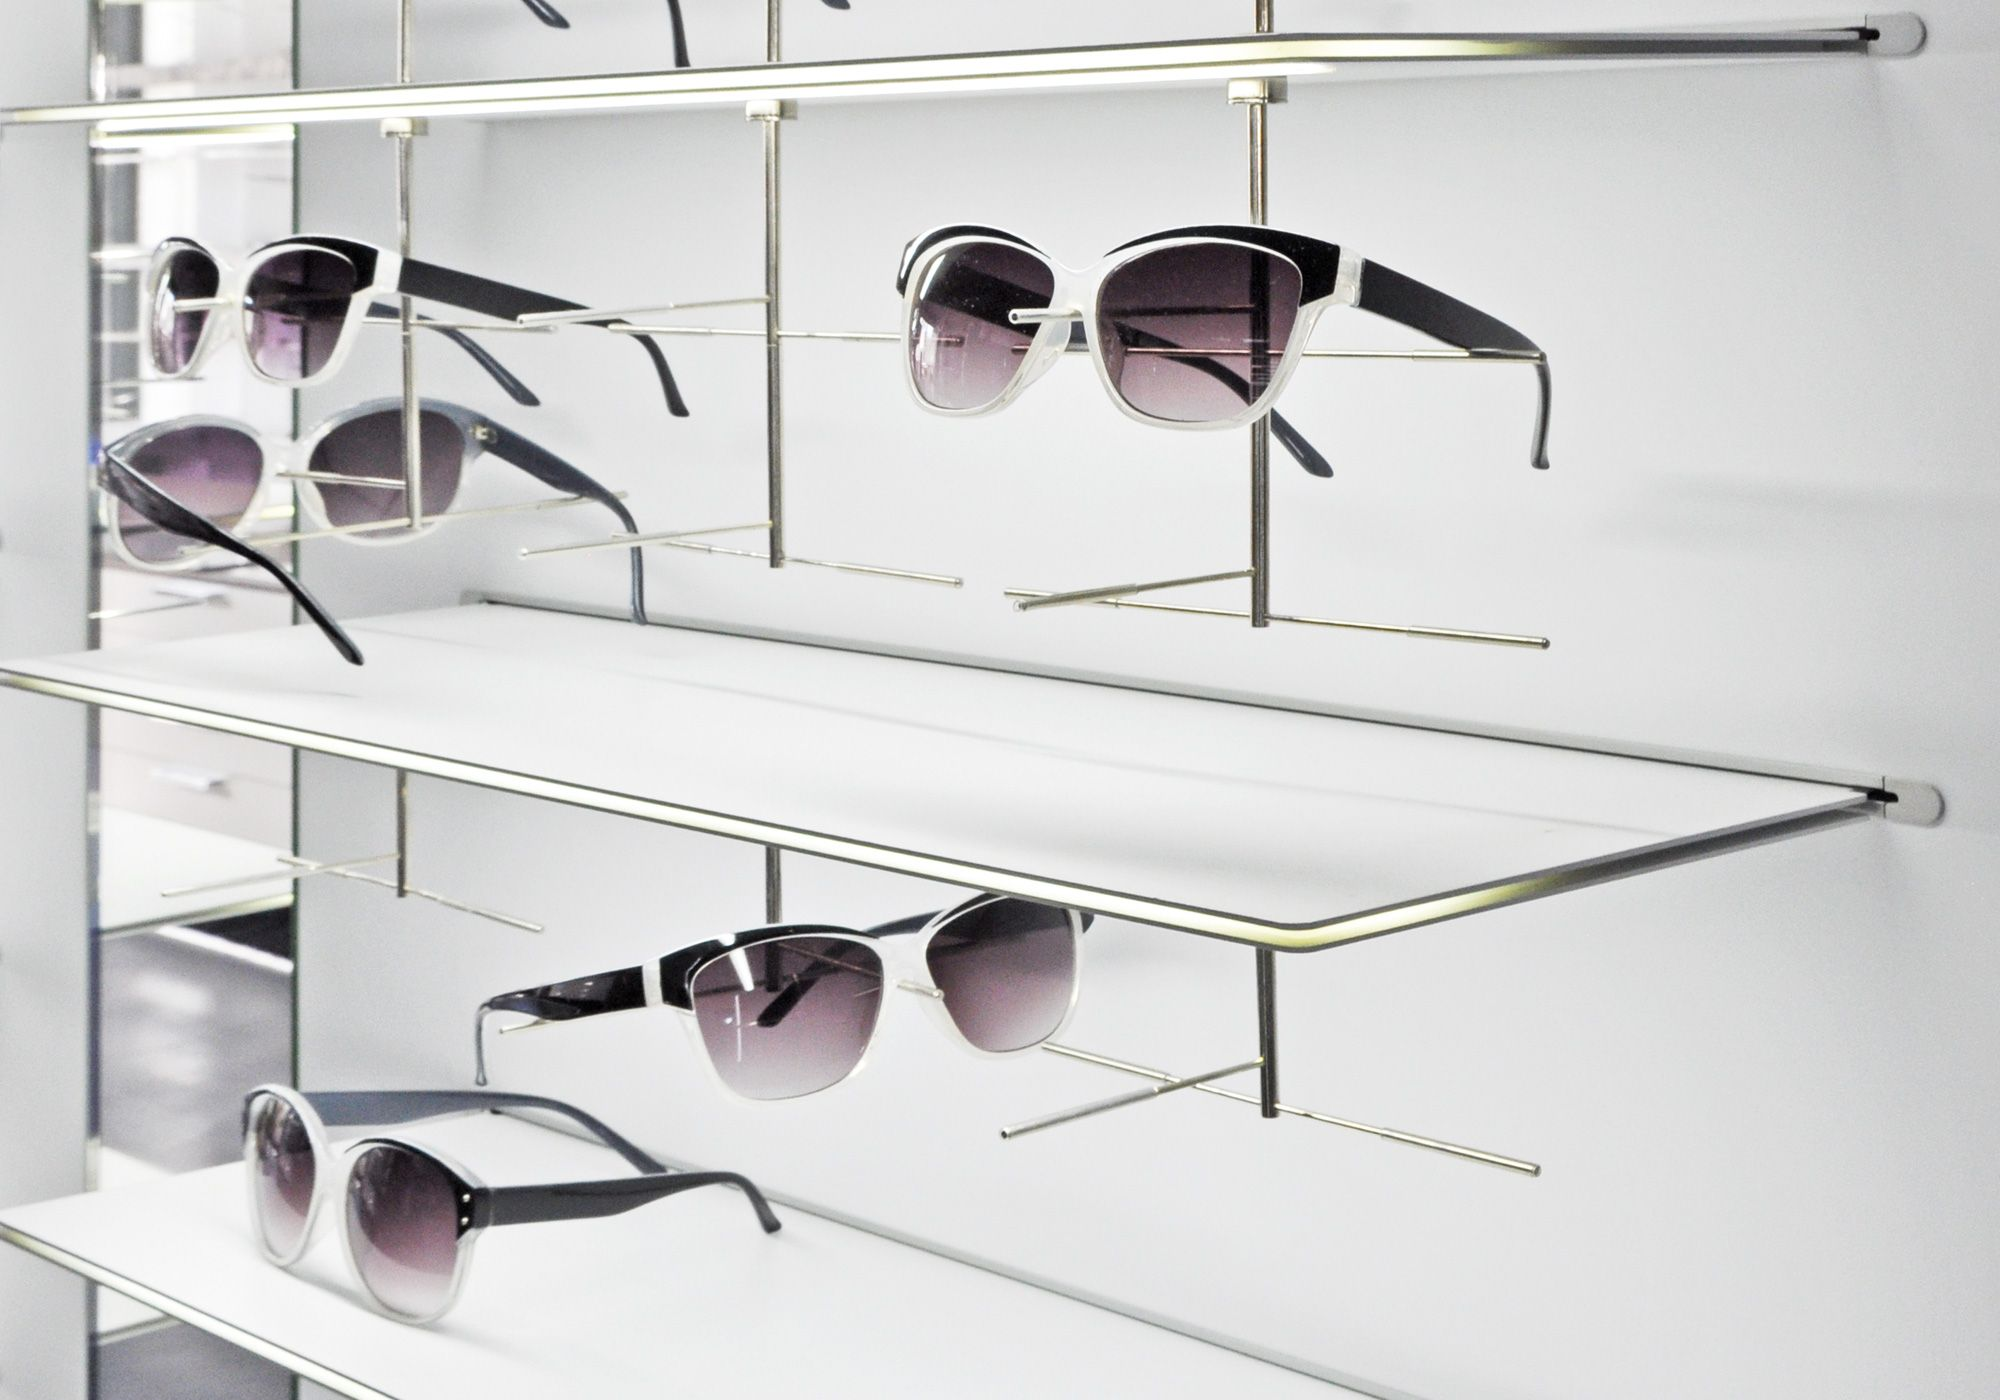 The Linear Led Shelves Have Elegant Design And Low Installation Height With Visible Light At The Front Edge They Also Have A Bui In 2020 Led Beleuchtung Led Acrylglas